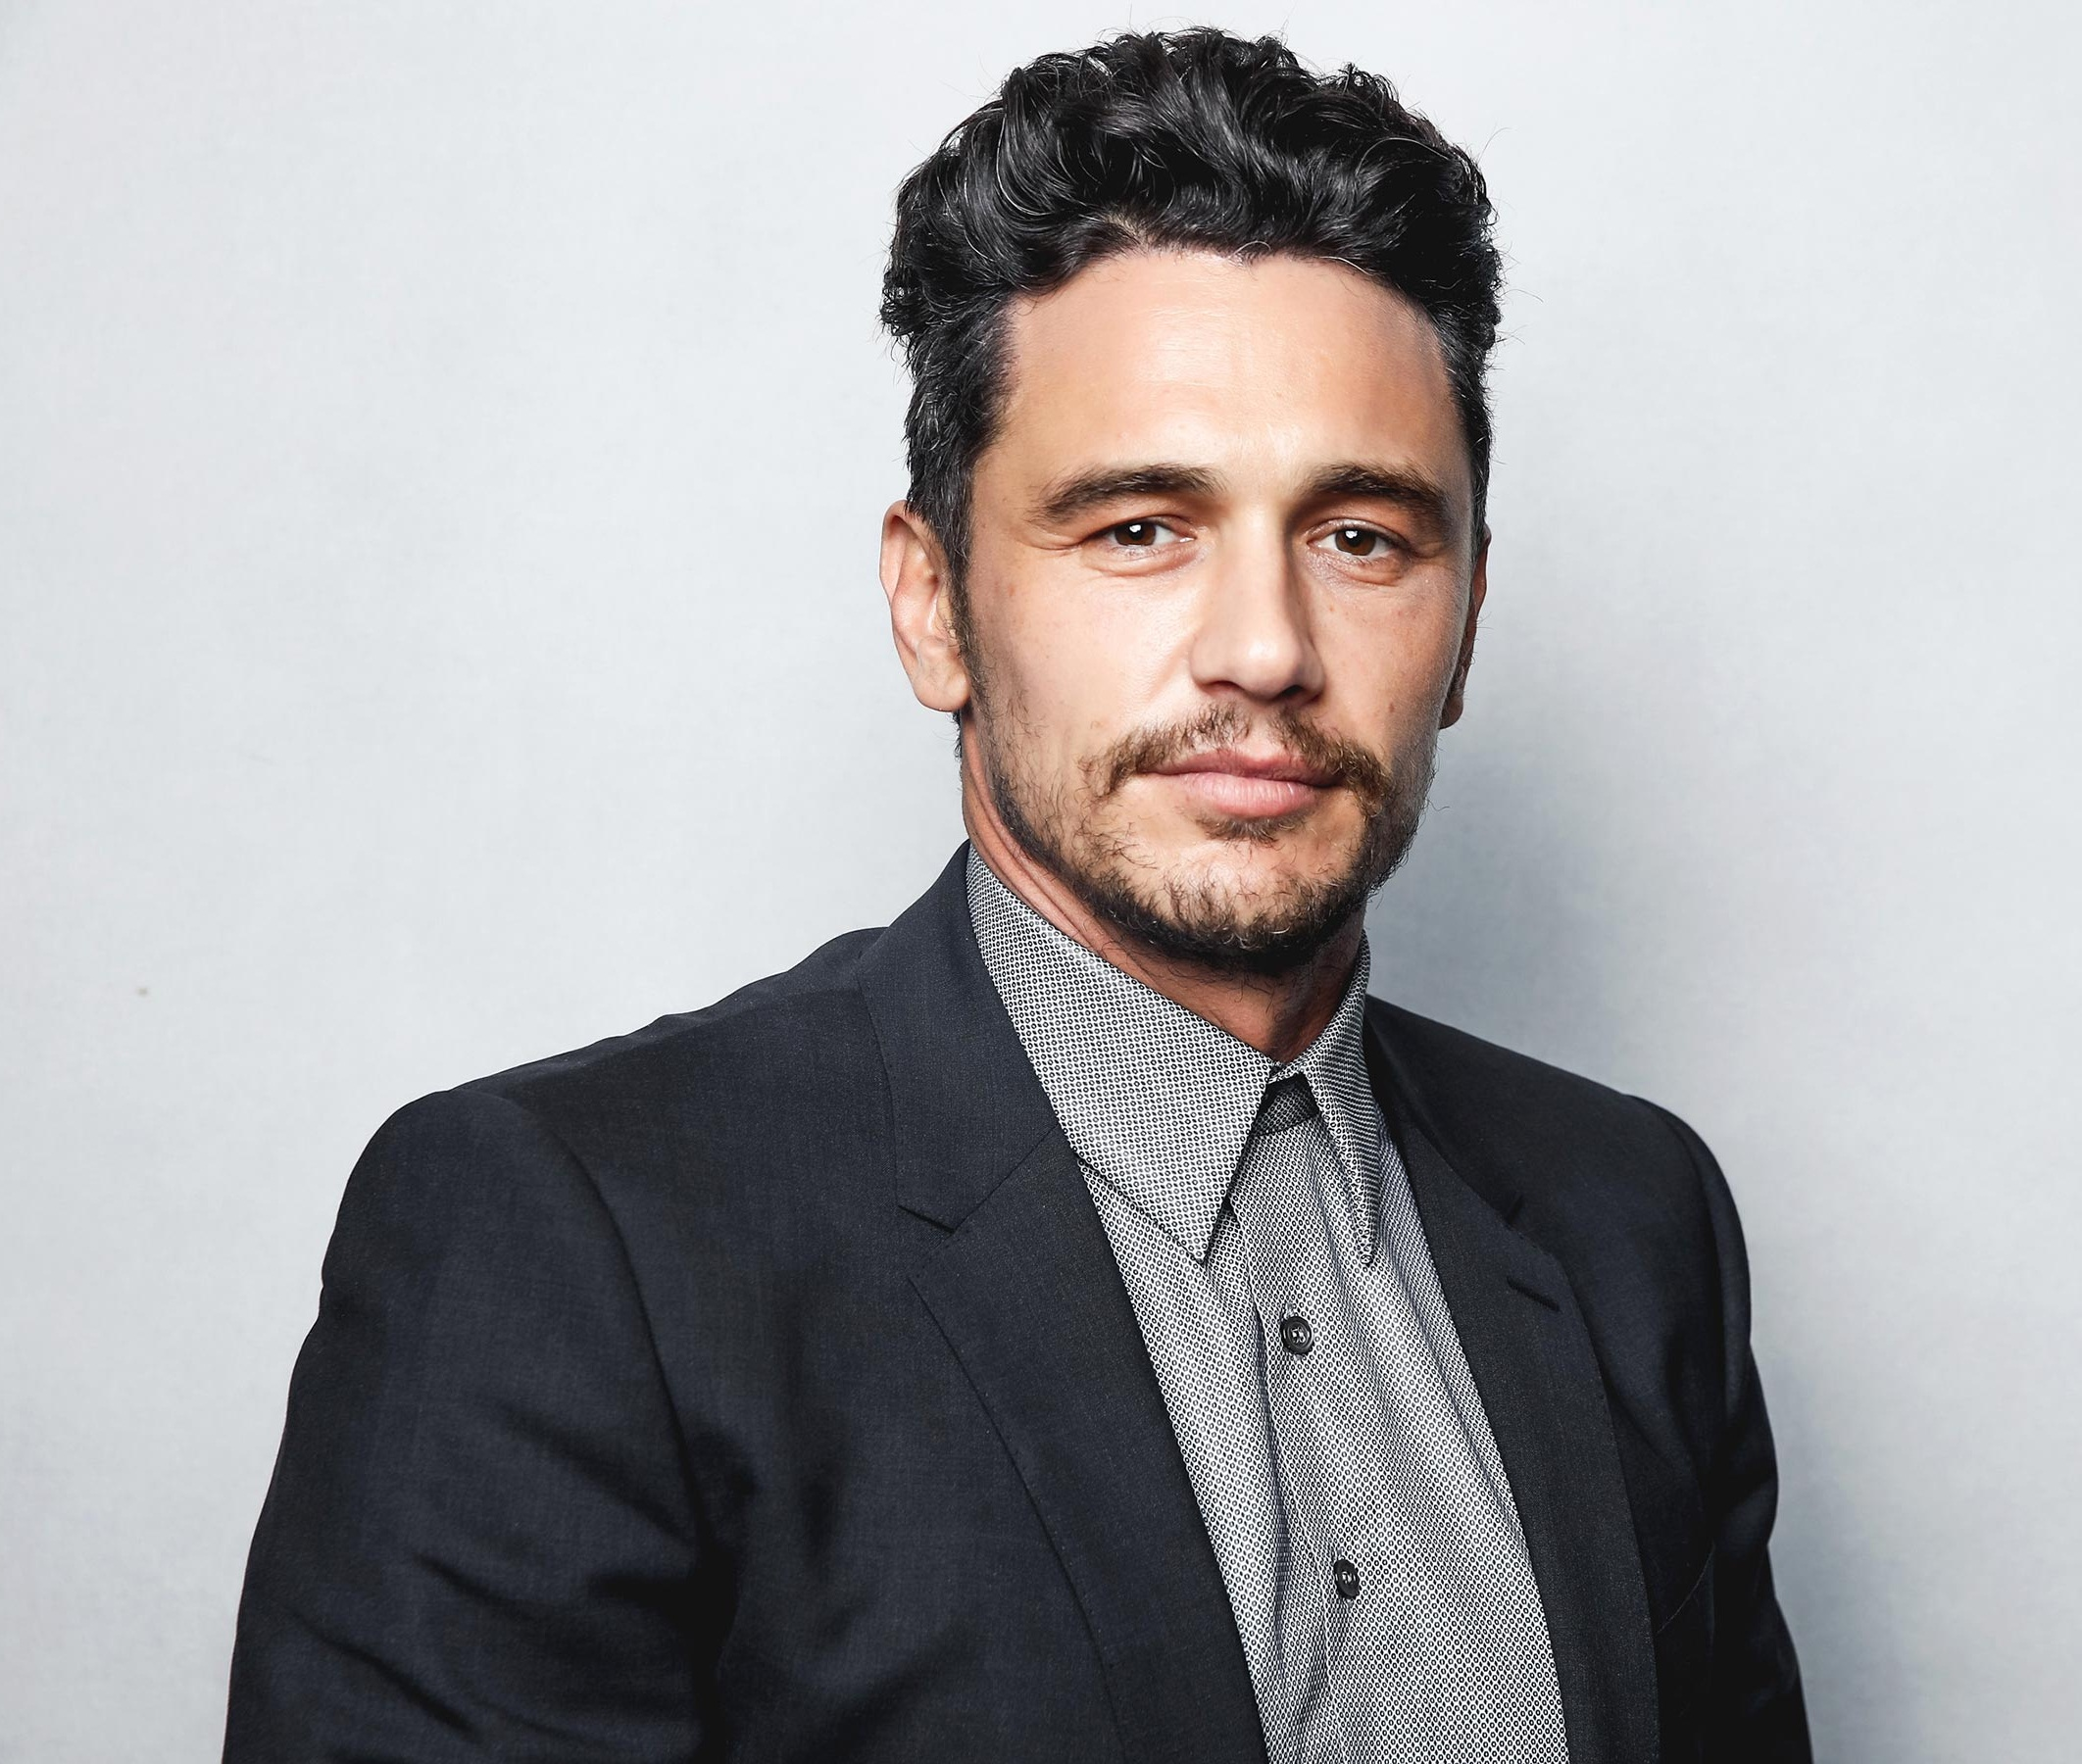 James Franco Age, Height, Net Worth, Brother, Girlfriend ...